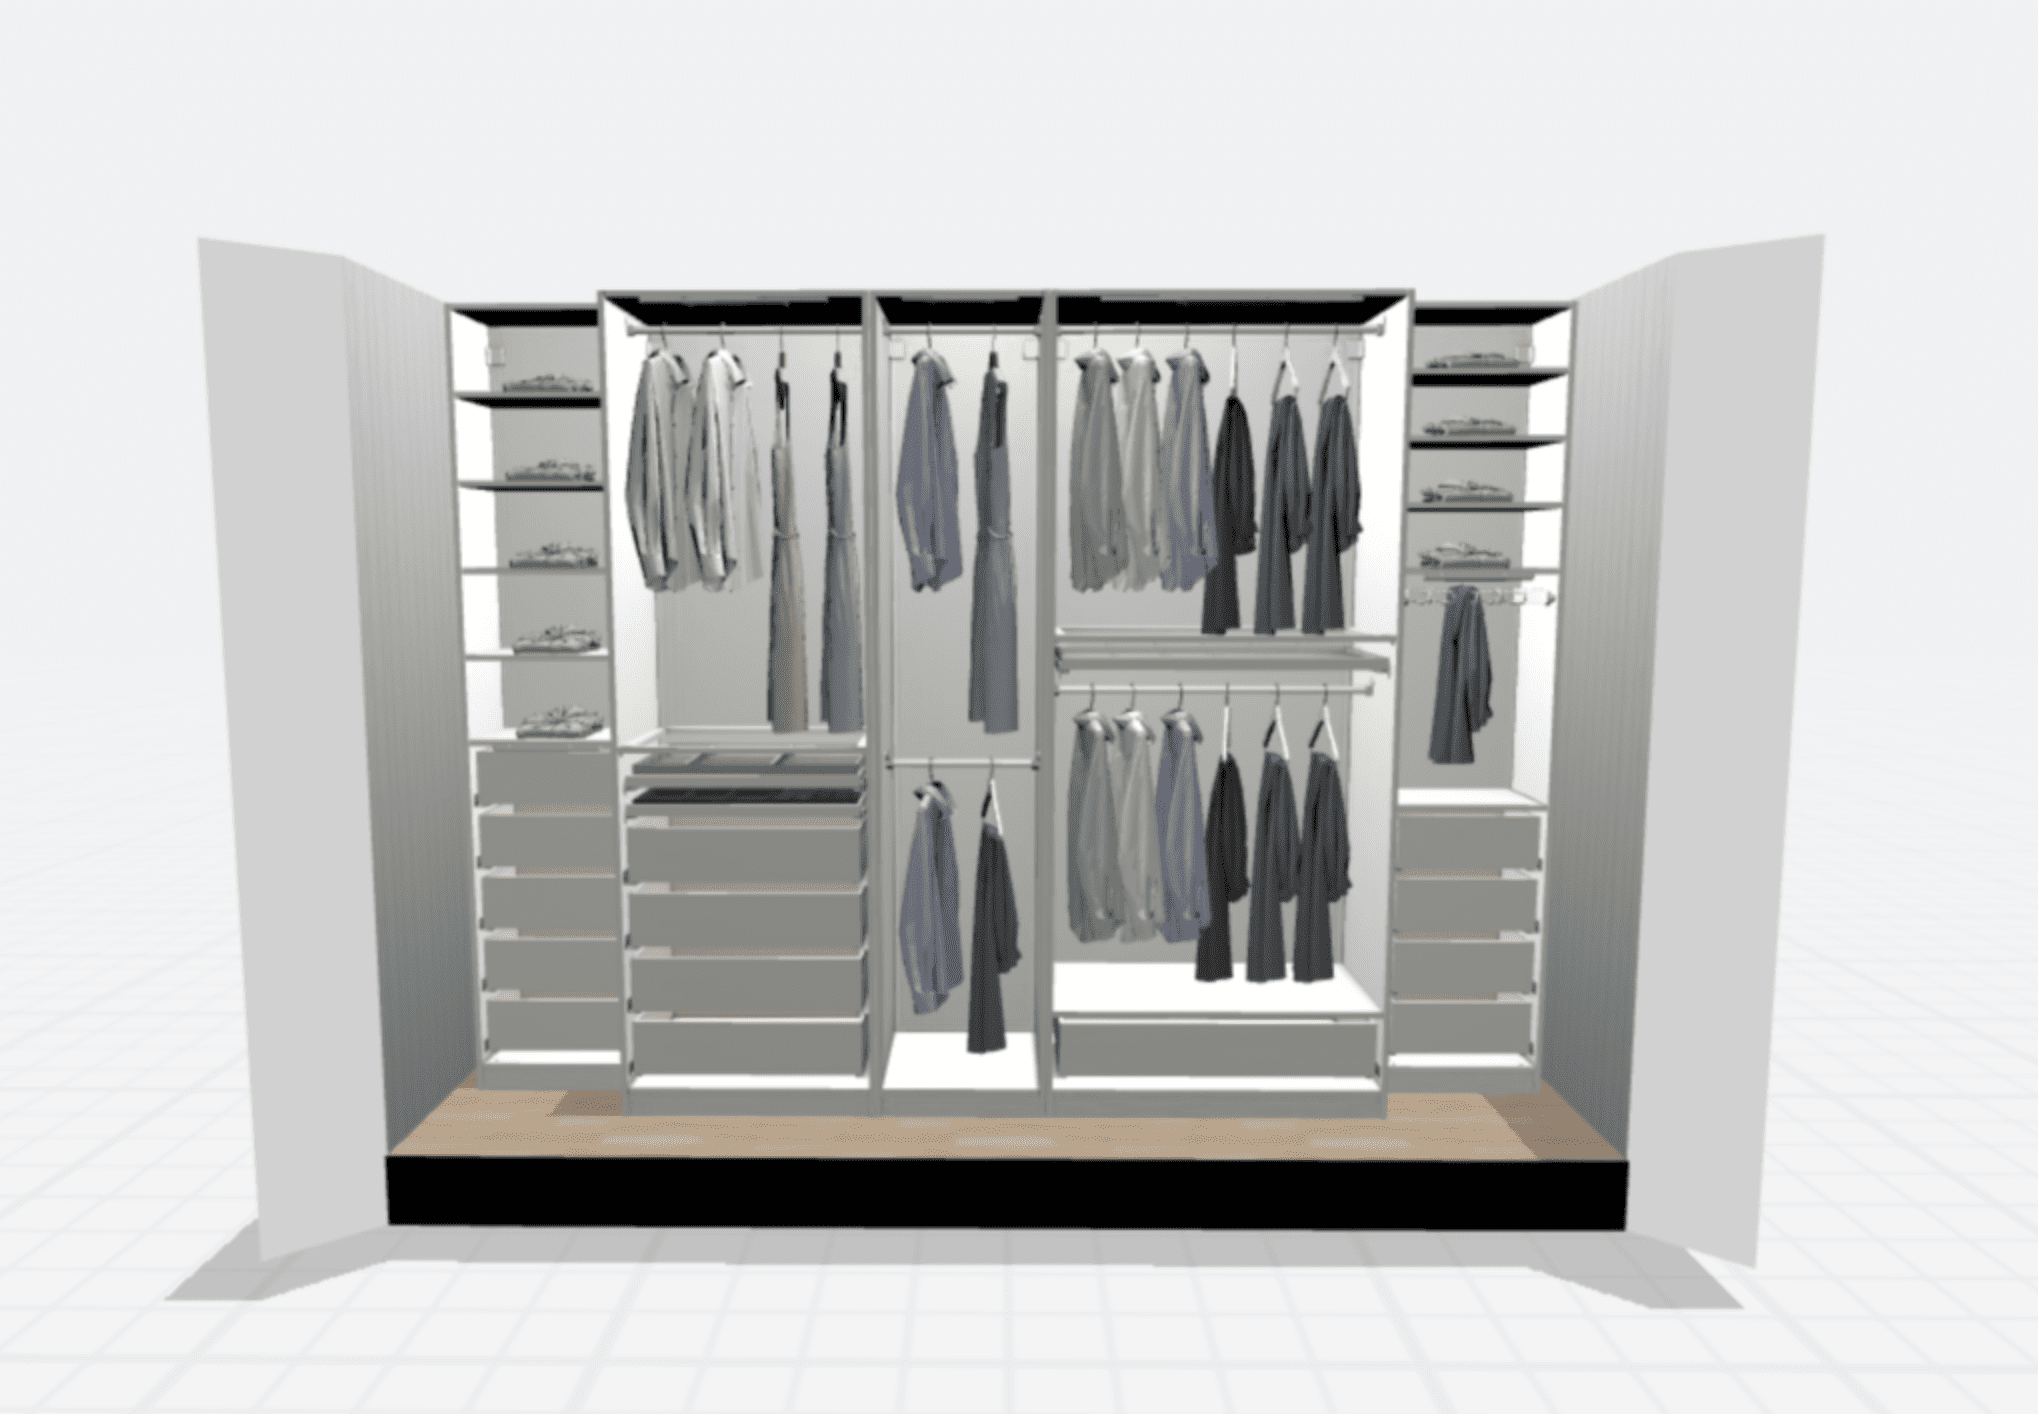 A closet planned out in IKEA's digital planning tool